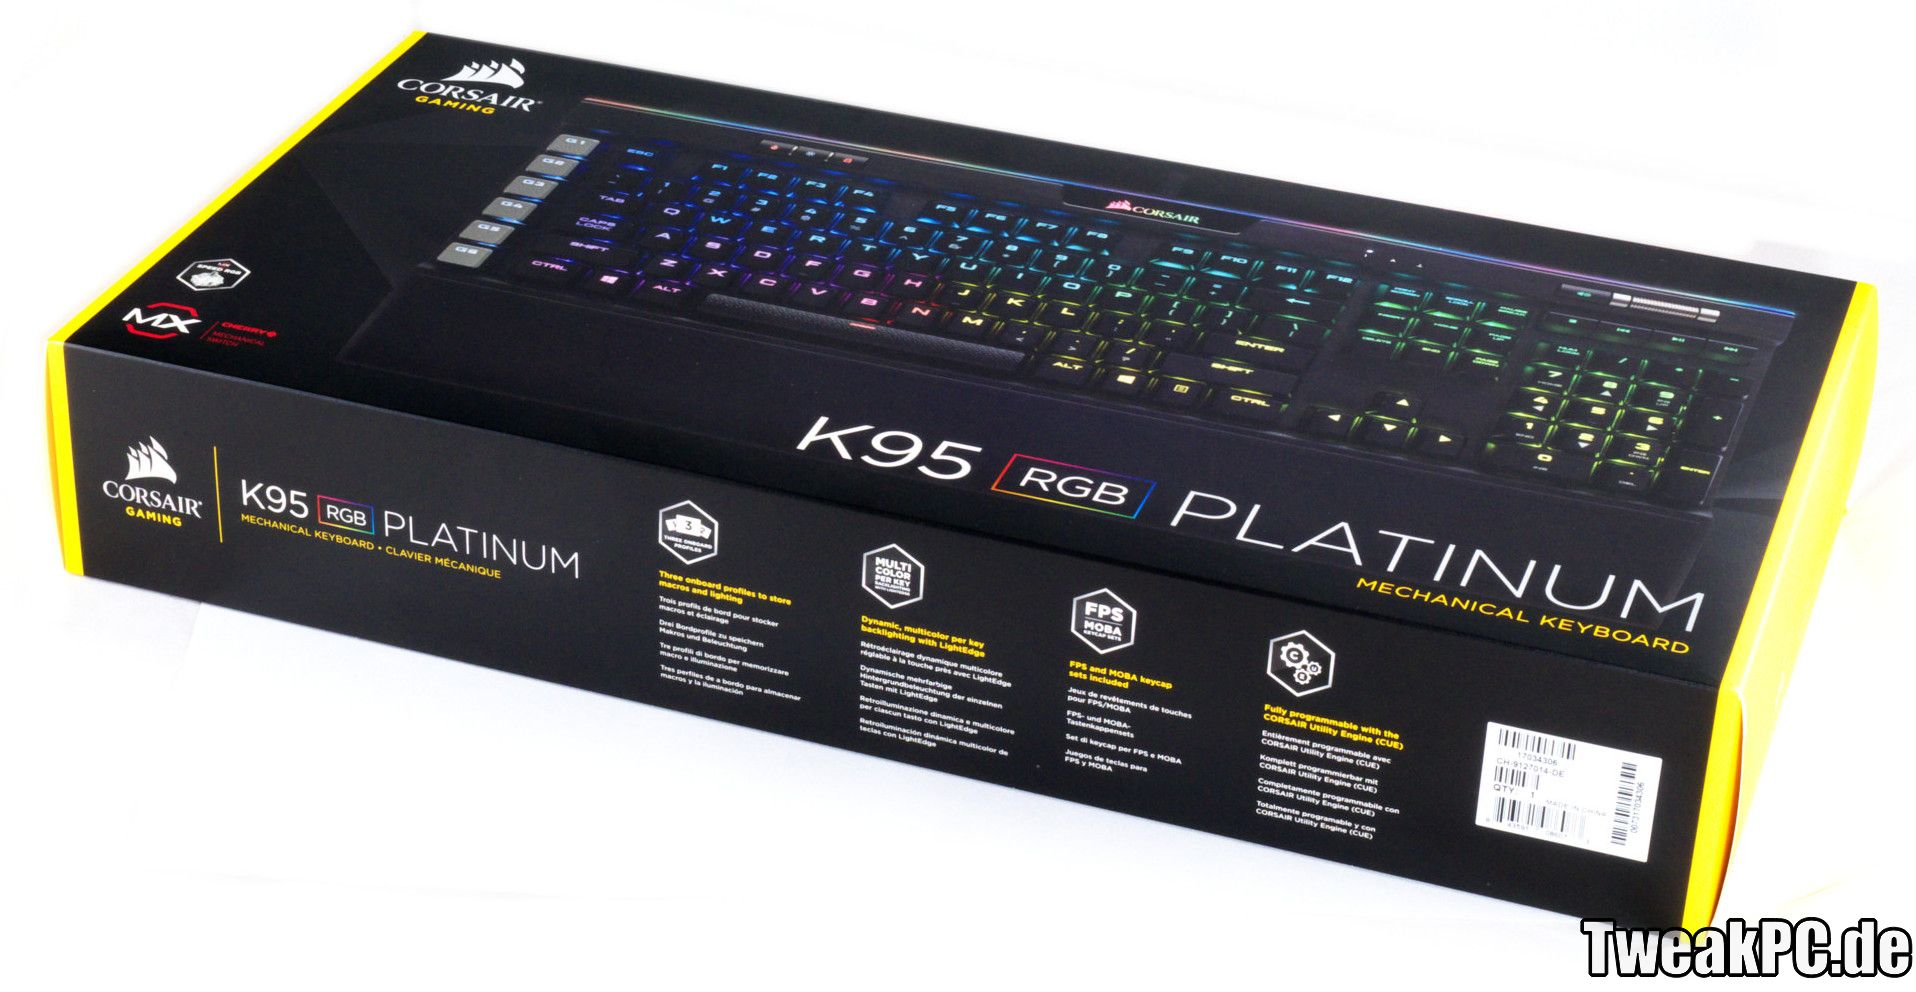 Corsair K95 Rgb Platinum Im Test Luxus Fr Gamerhnde Mechanical Gaming Keyboard Cherry Mx Speed